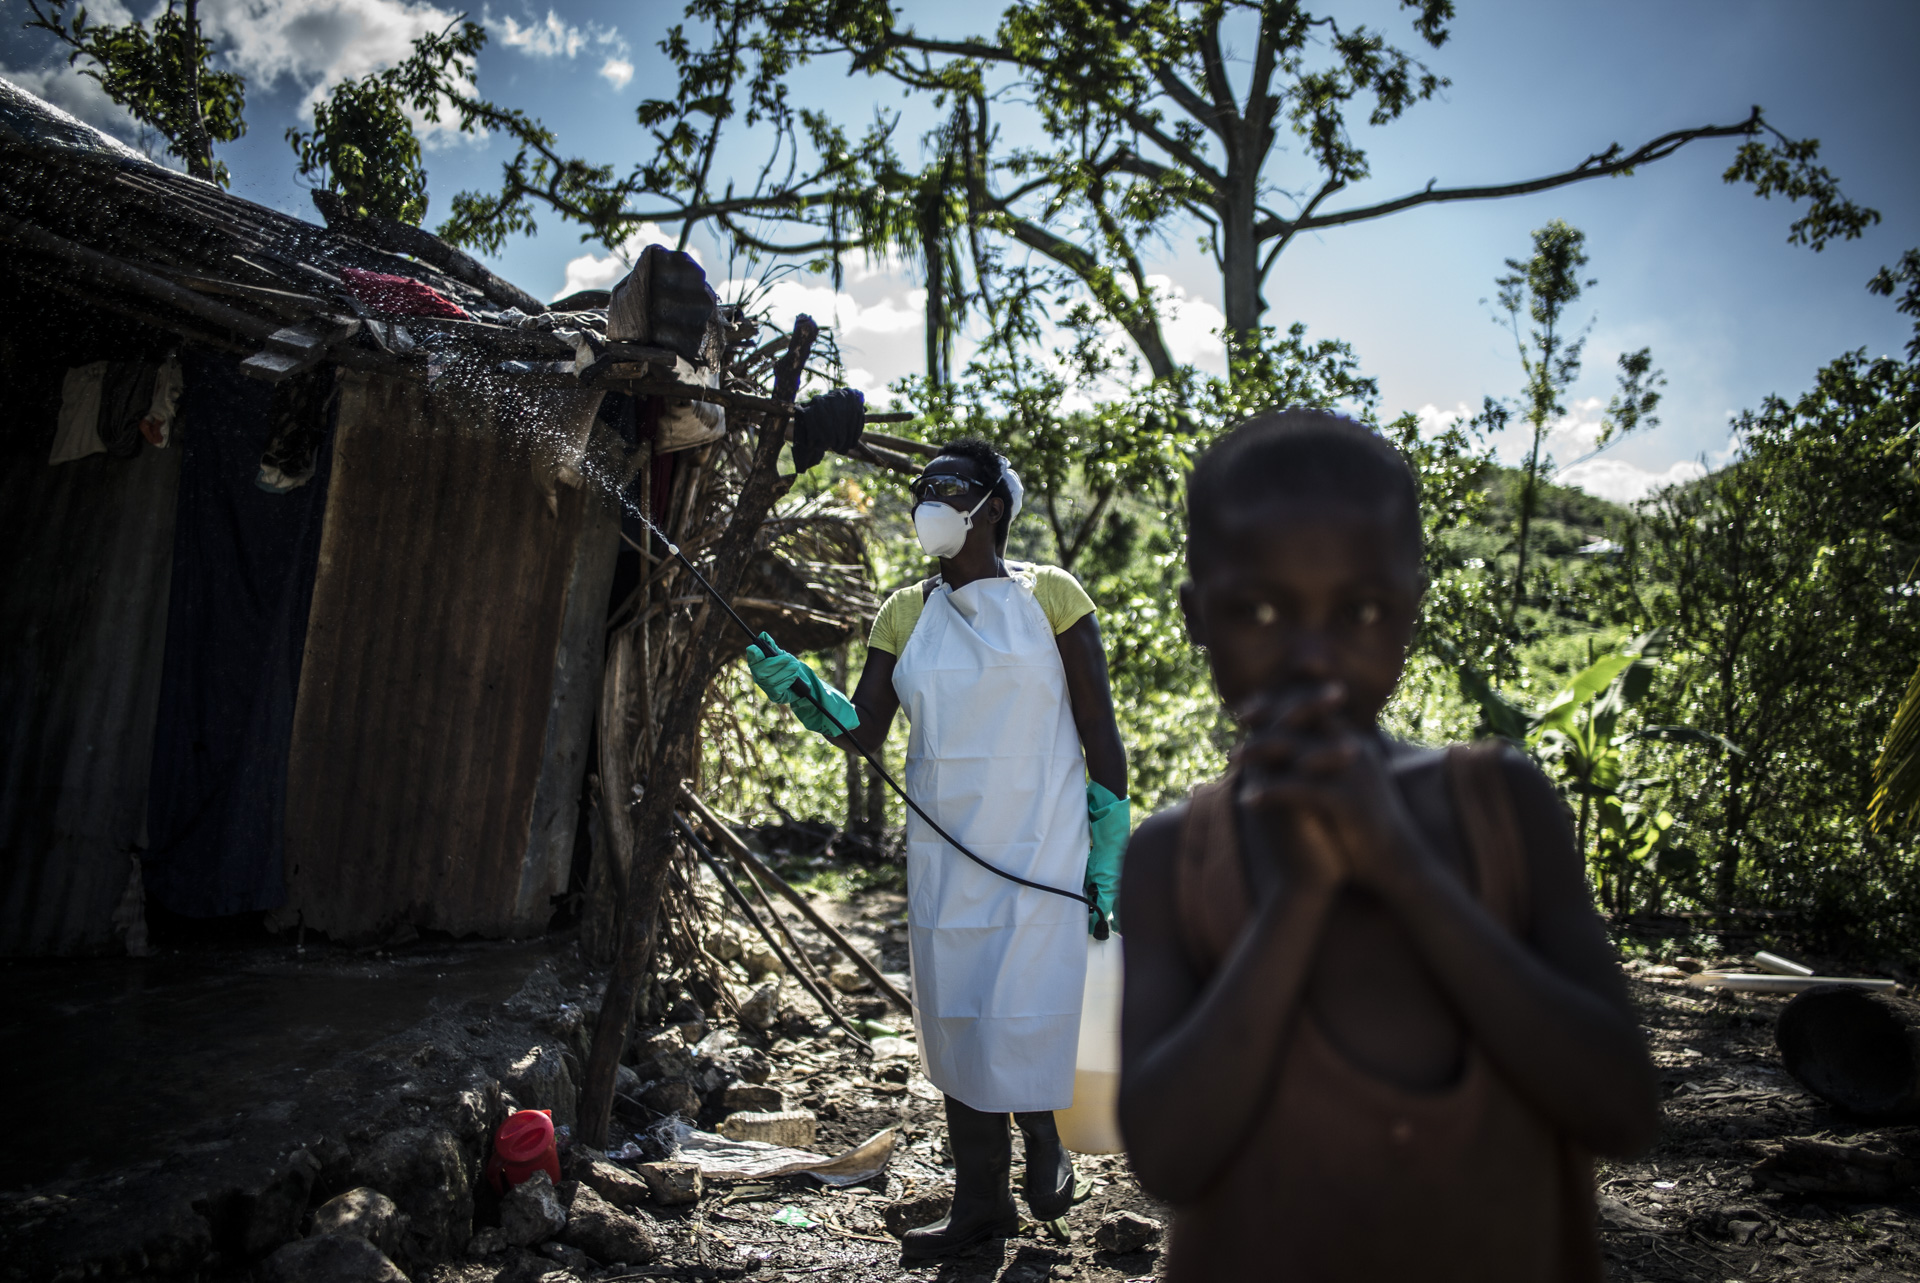 HAITI, THE FORGOTTEN CHOLERA OUTBREAK